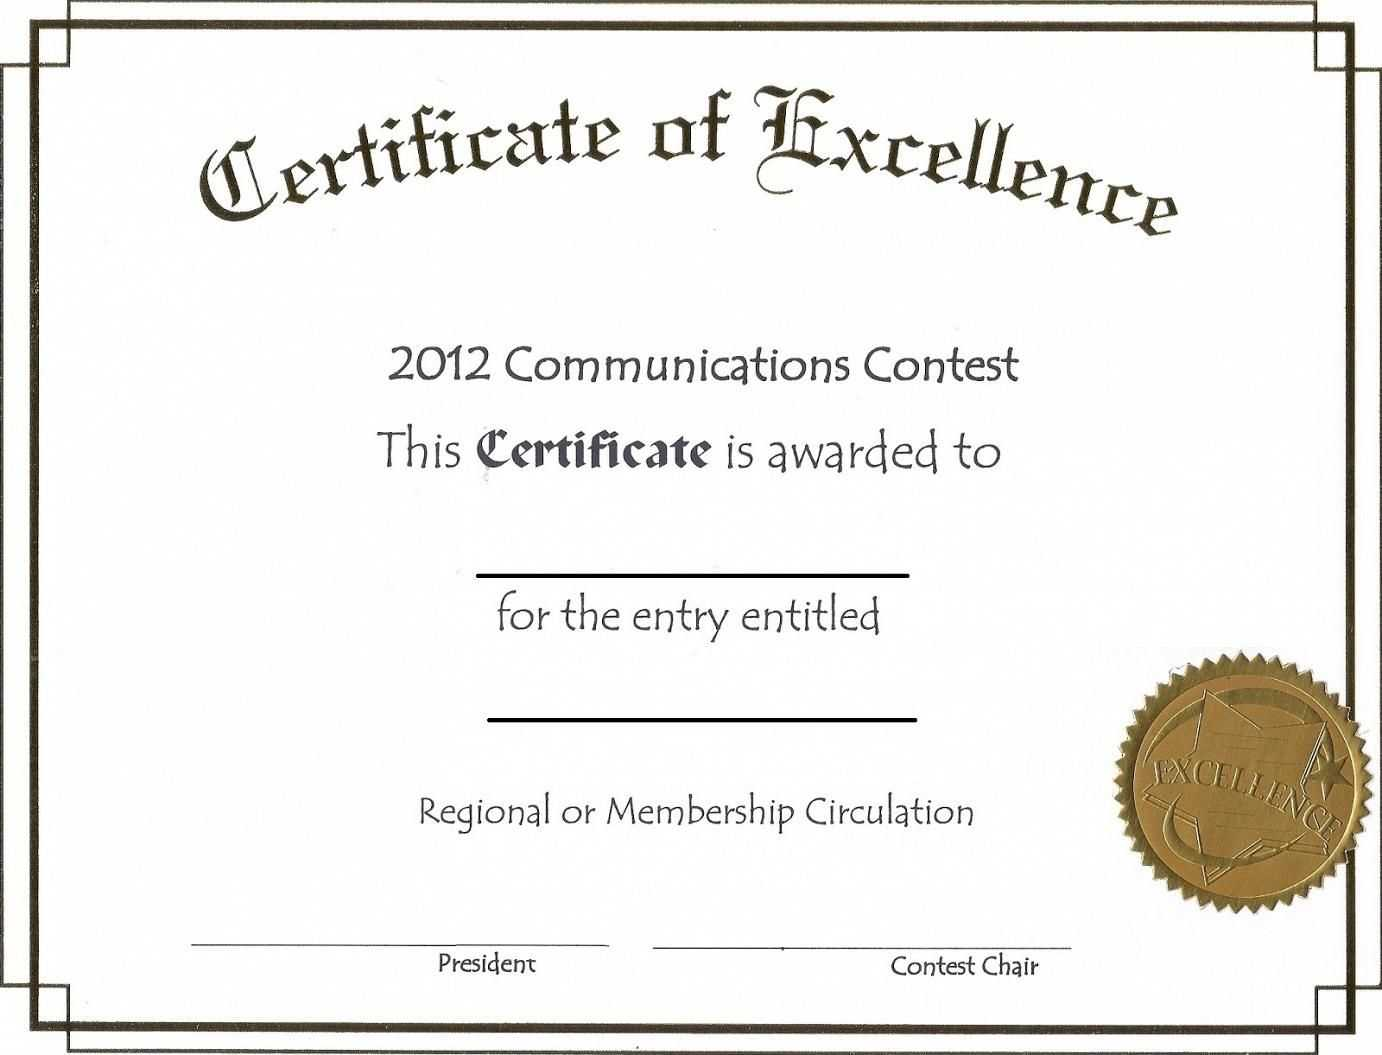 Microsoft Word Certificate Template – Mahre.horizonconsulting.co Intended For Soccer Certificate Templates For Word